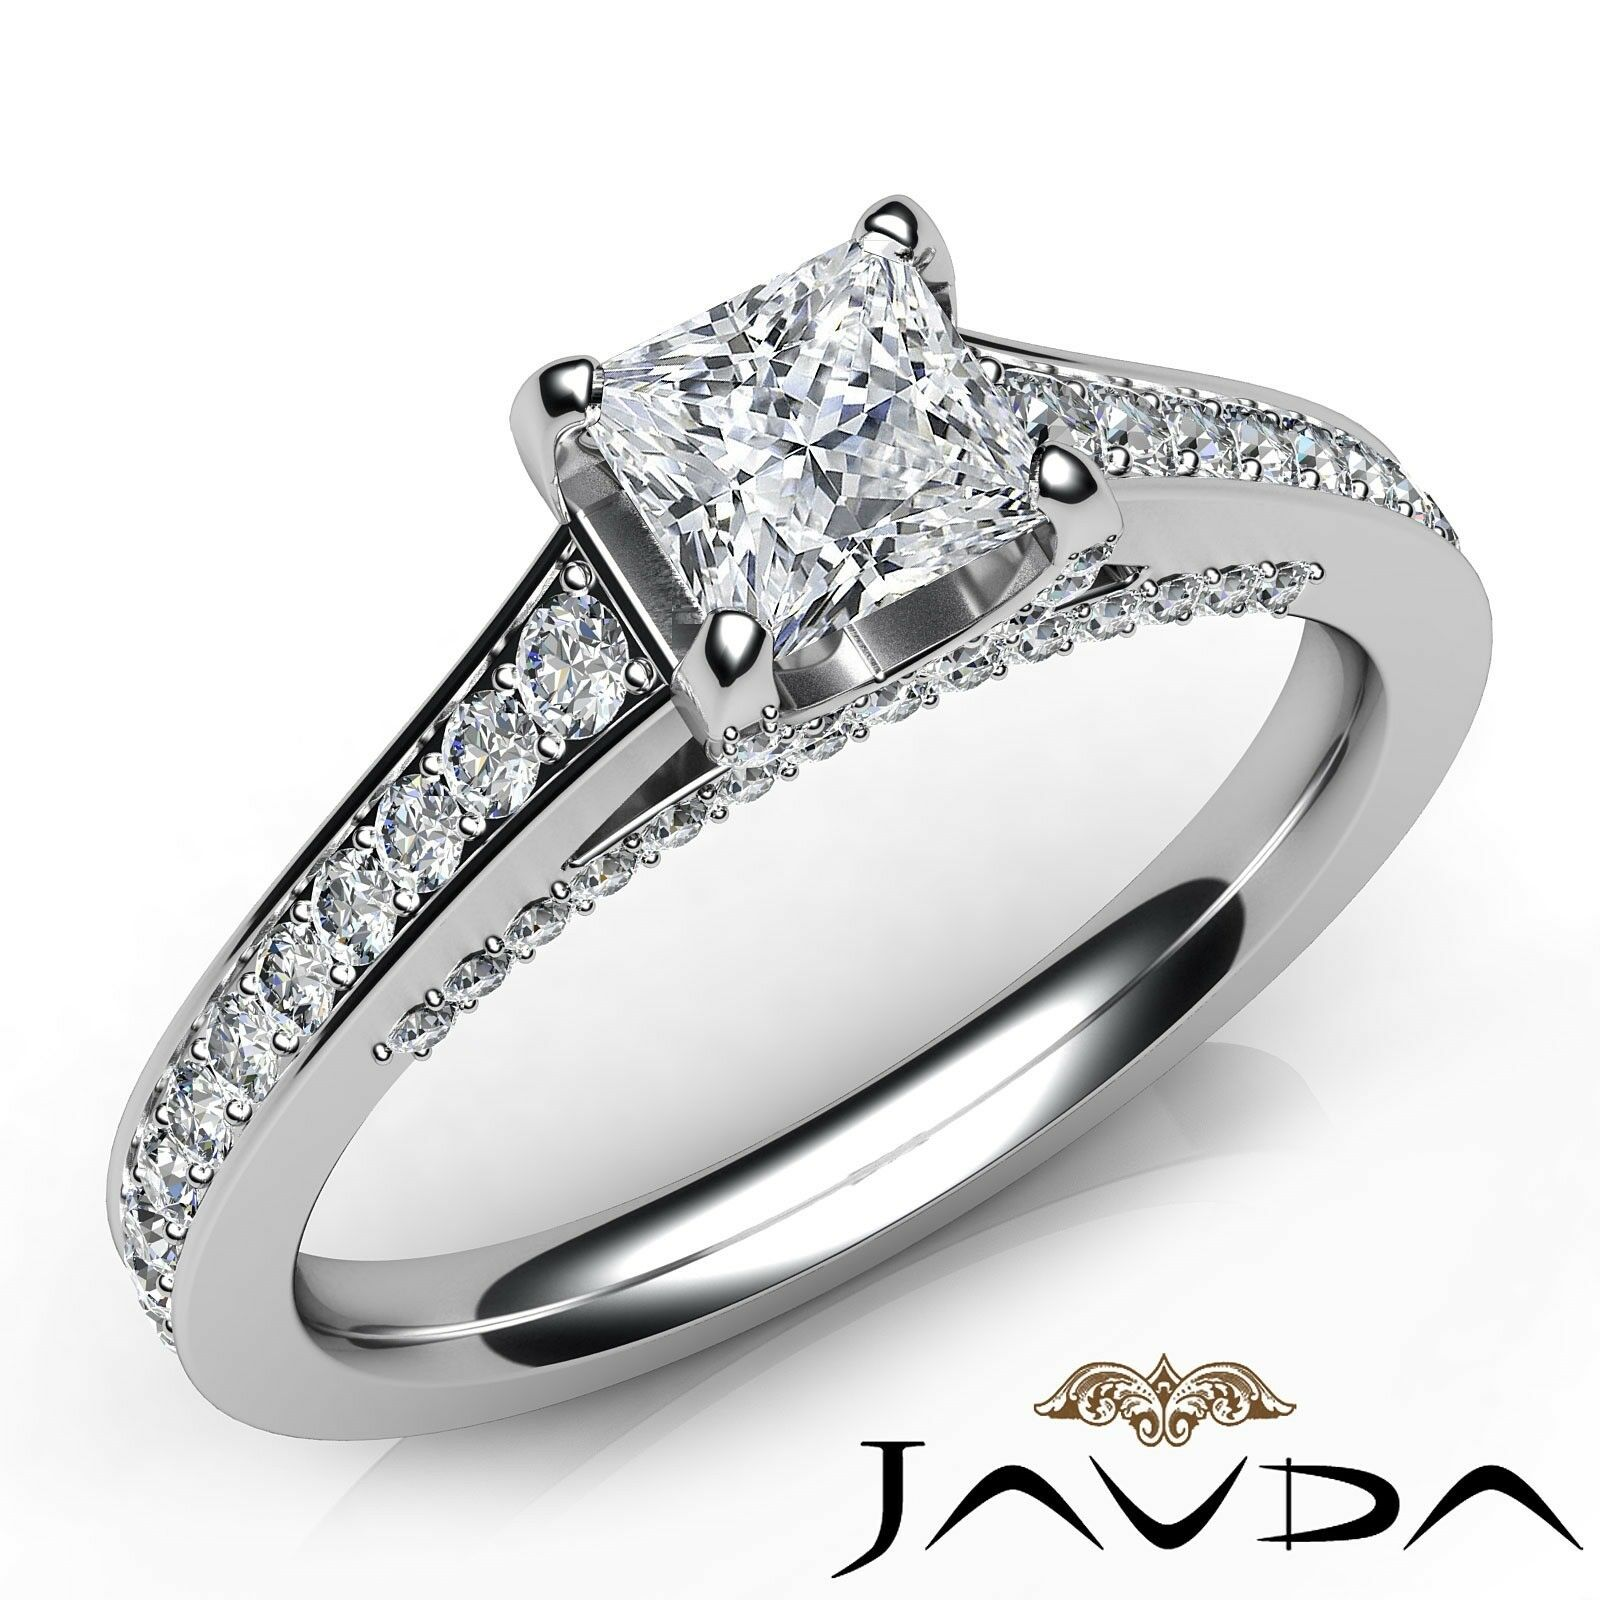 1.95ctw Natural 100% Princess Diamond Engagement Ring GIA J-SI2 White Gold Rings